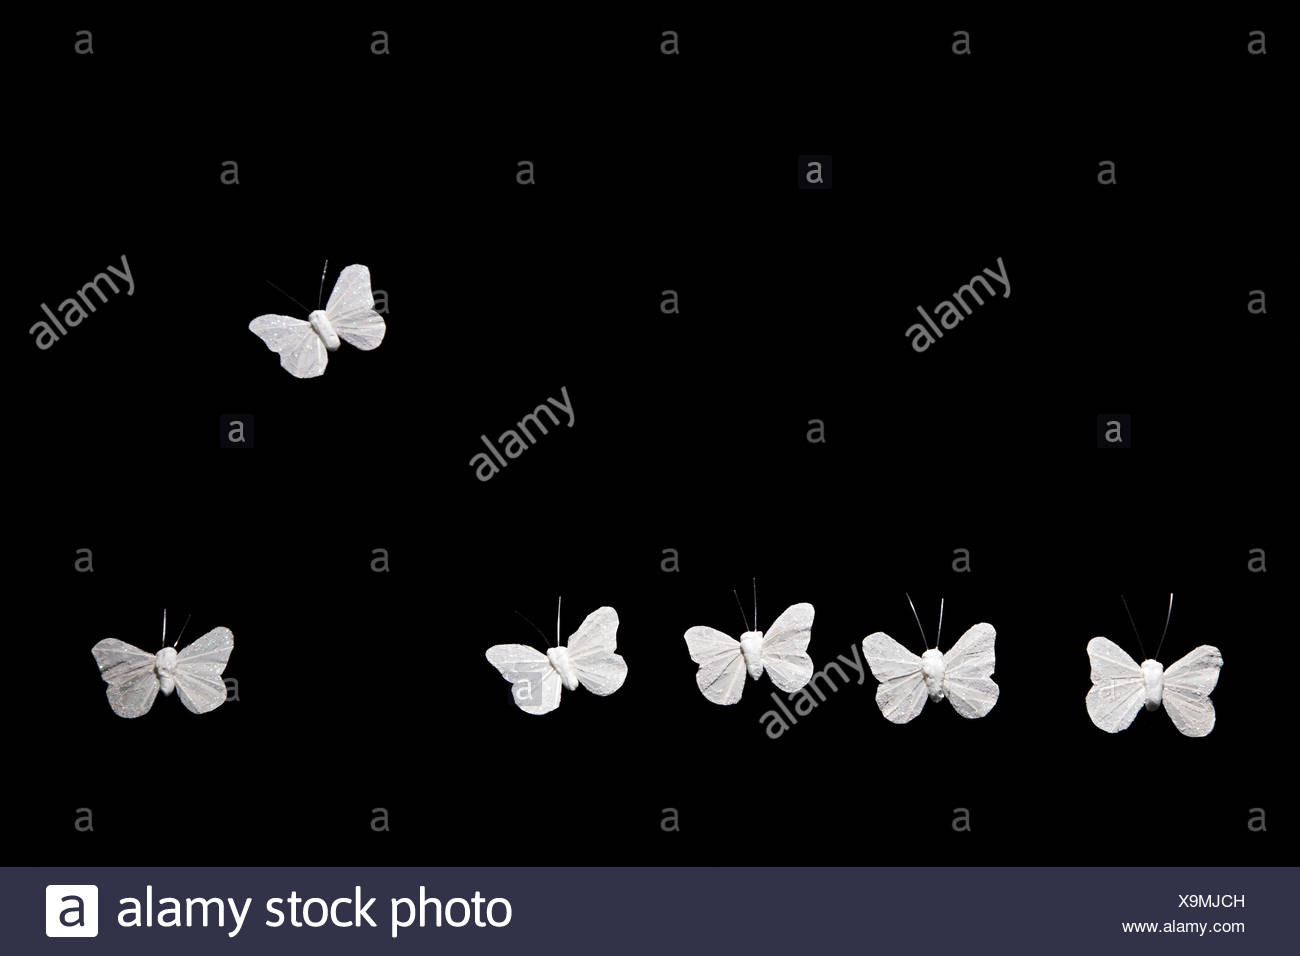 Butterfly flying away from others - Stock Image